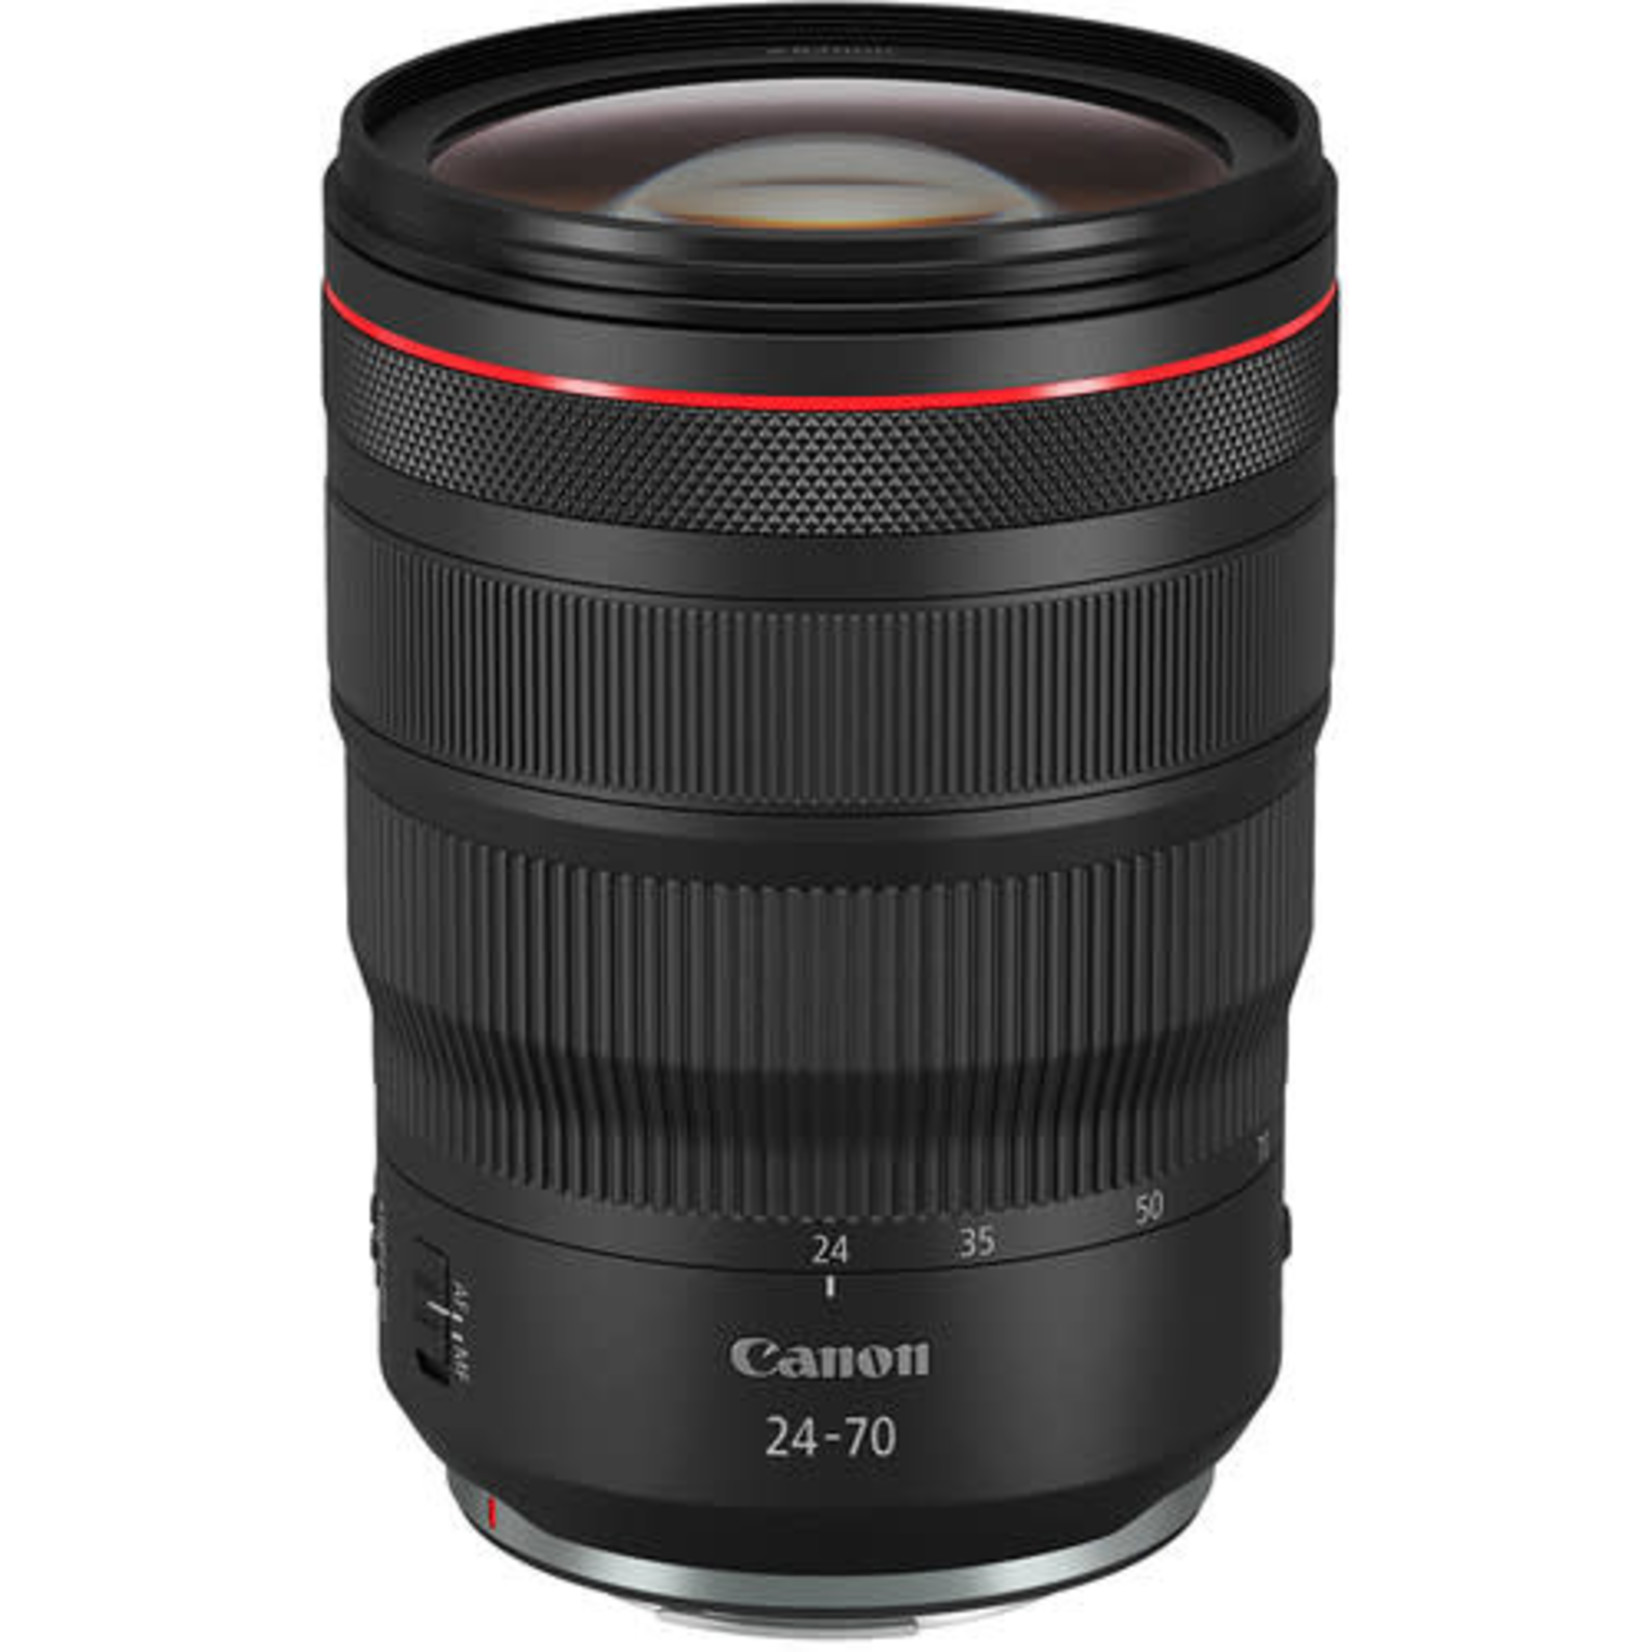 Canon Canon RF 24-70mm f/2.8L IS USM Lens